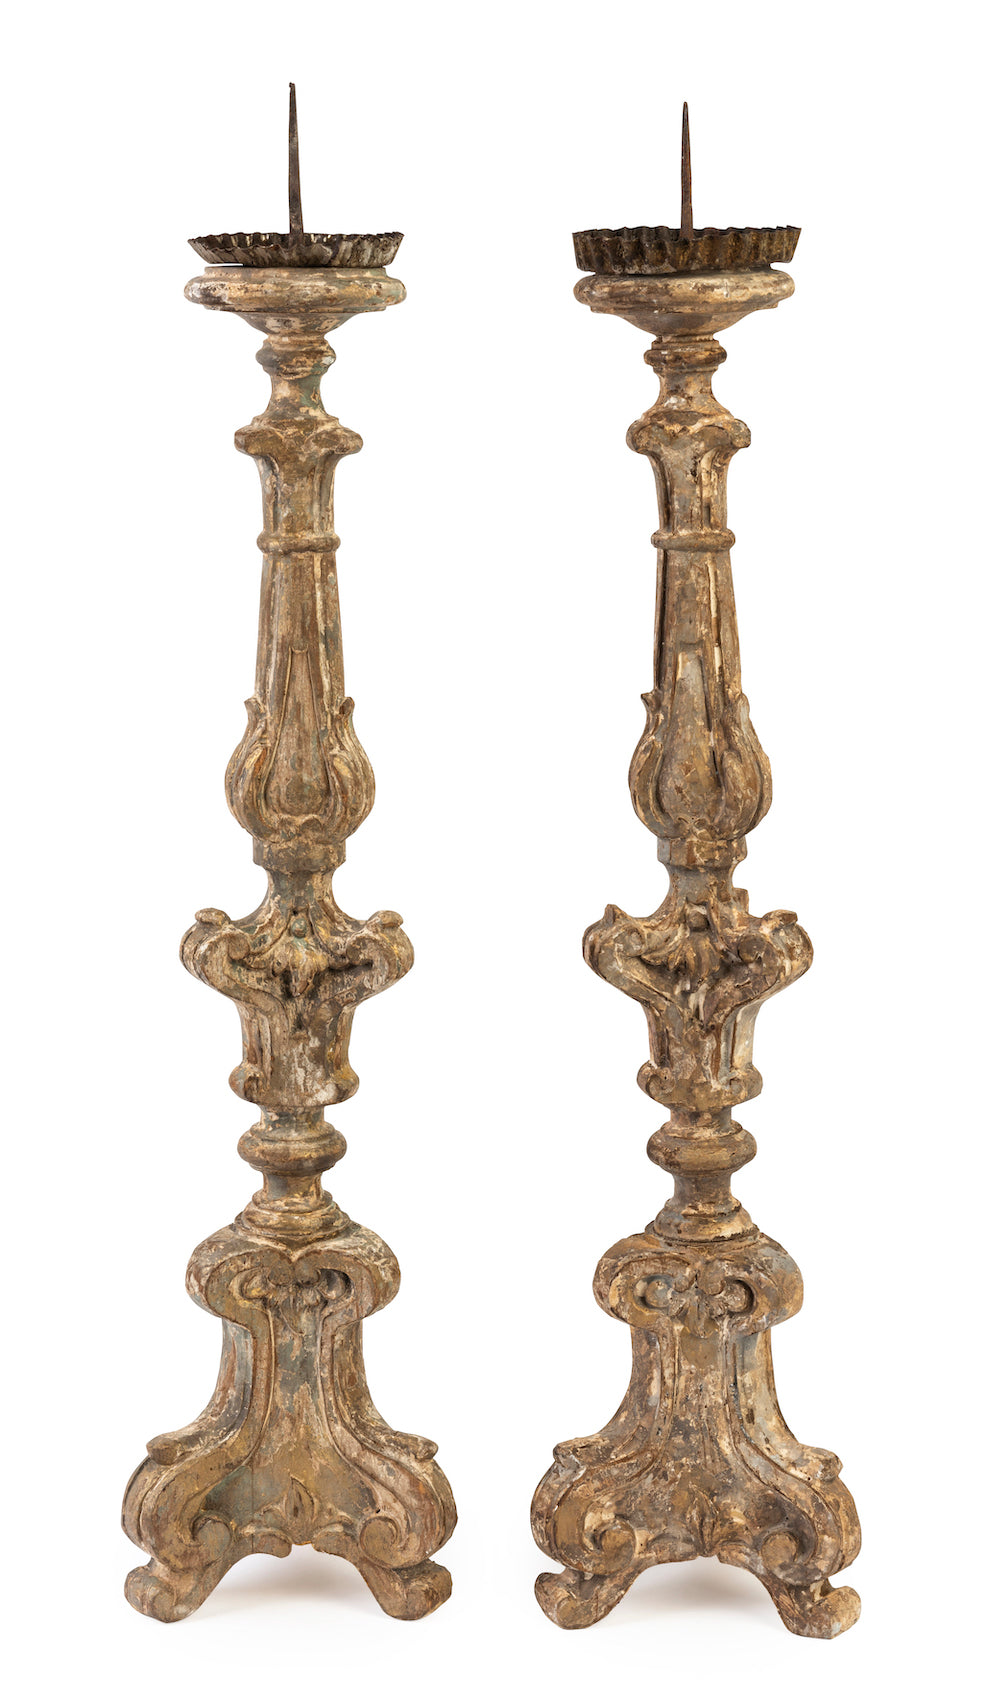 SOLD A pair of giltwood torchere candlesticks, Italian 18/19th Century